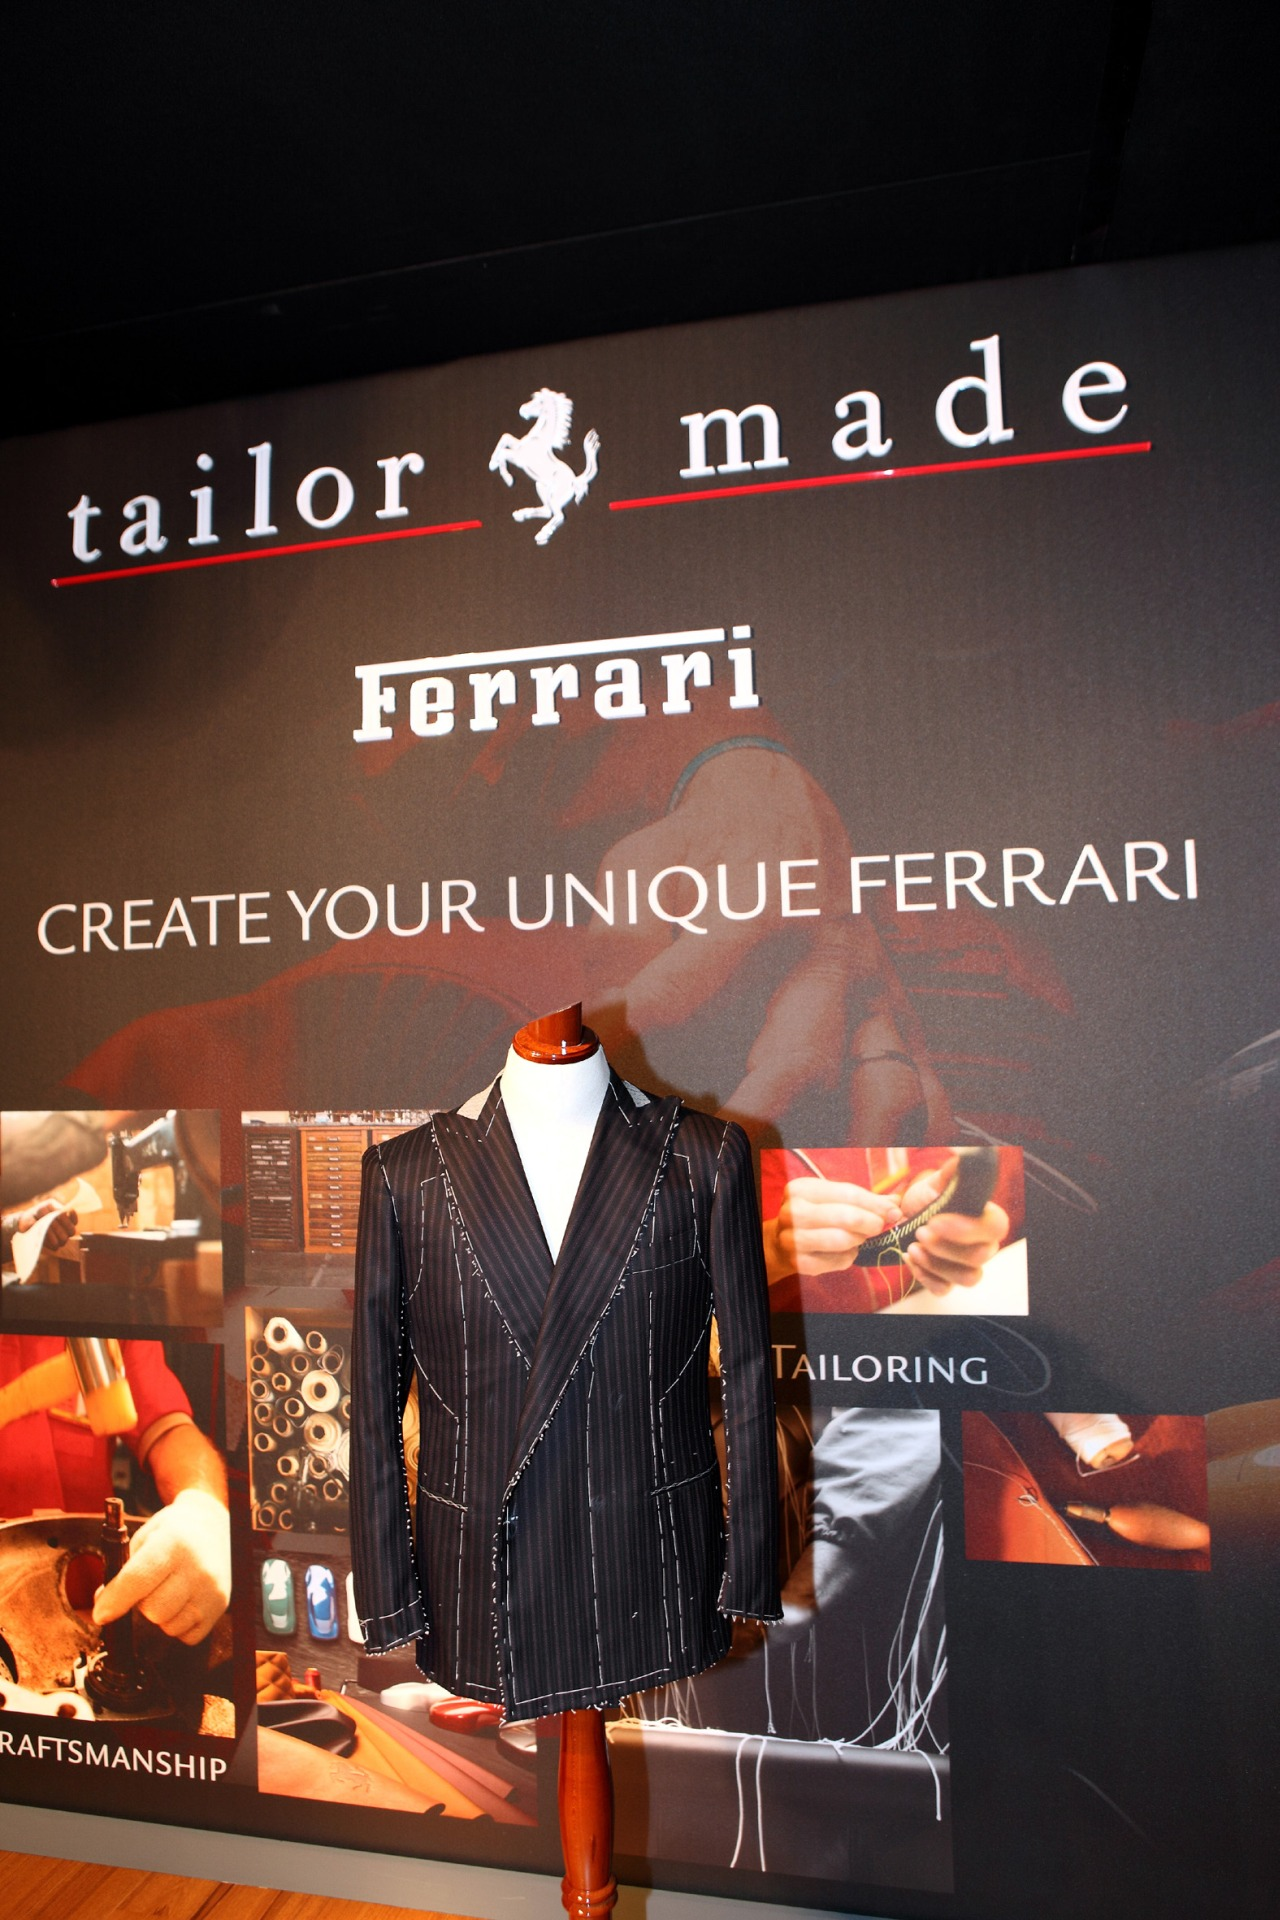 Ferrari_Tailor_Made_01.jpg